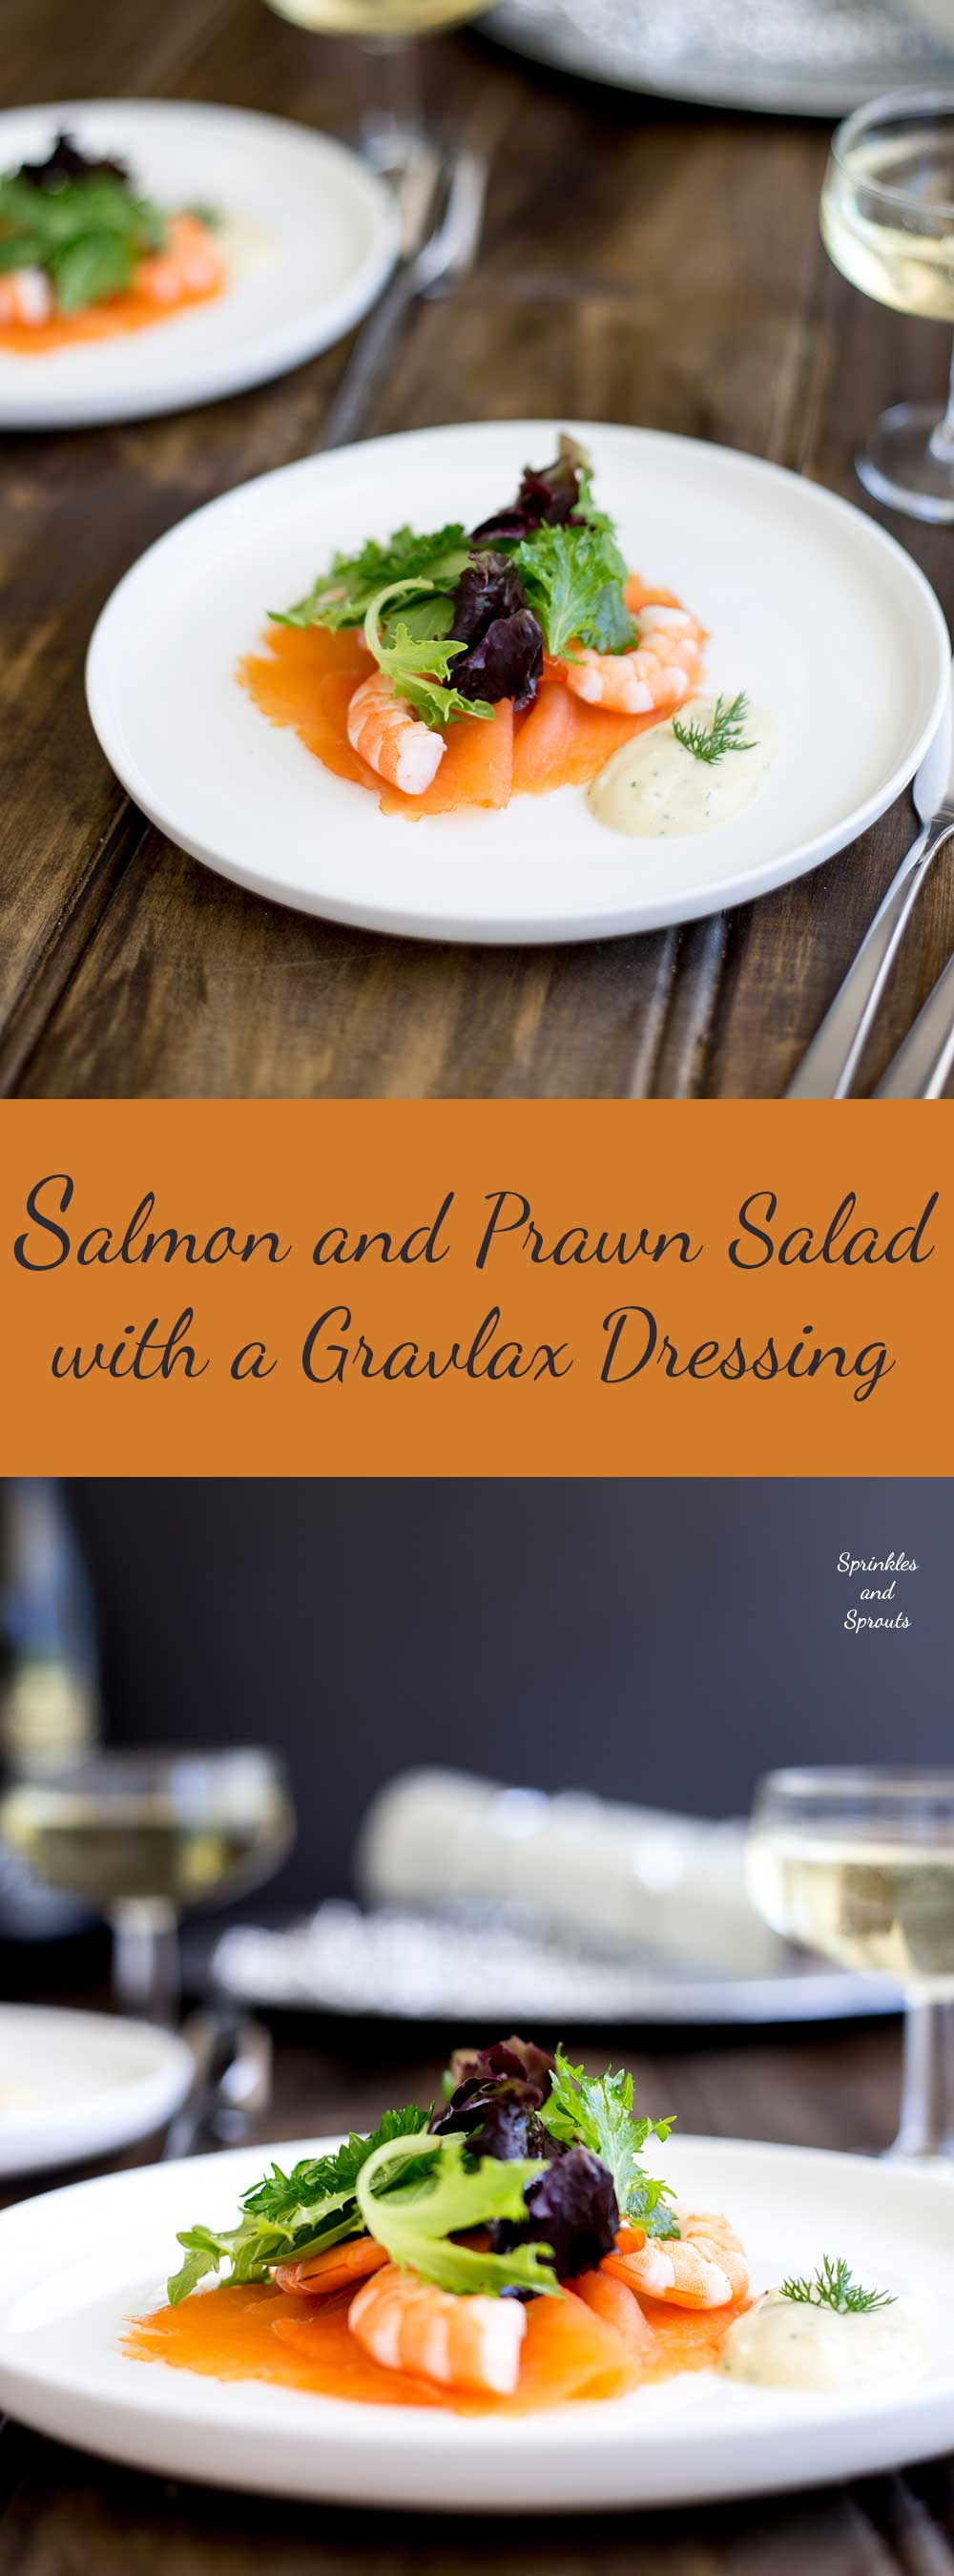 This Salmon and Prawn Salad with a Gravlax dressing is perfect for Christmas. It is rich yet light, feels posh and is super simple to make. As part of a Christmas feast it is the perfect first course. | Sprinkles and Sprouts